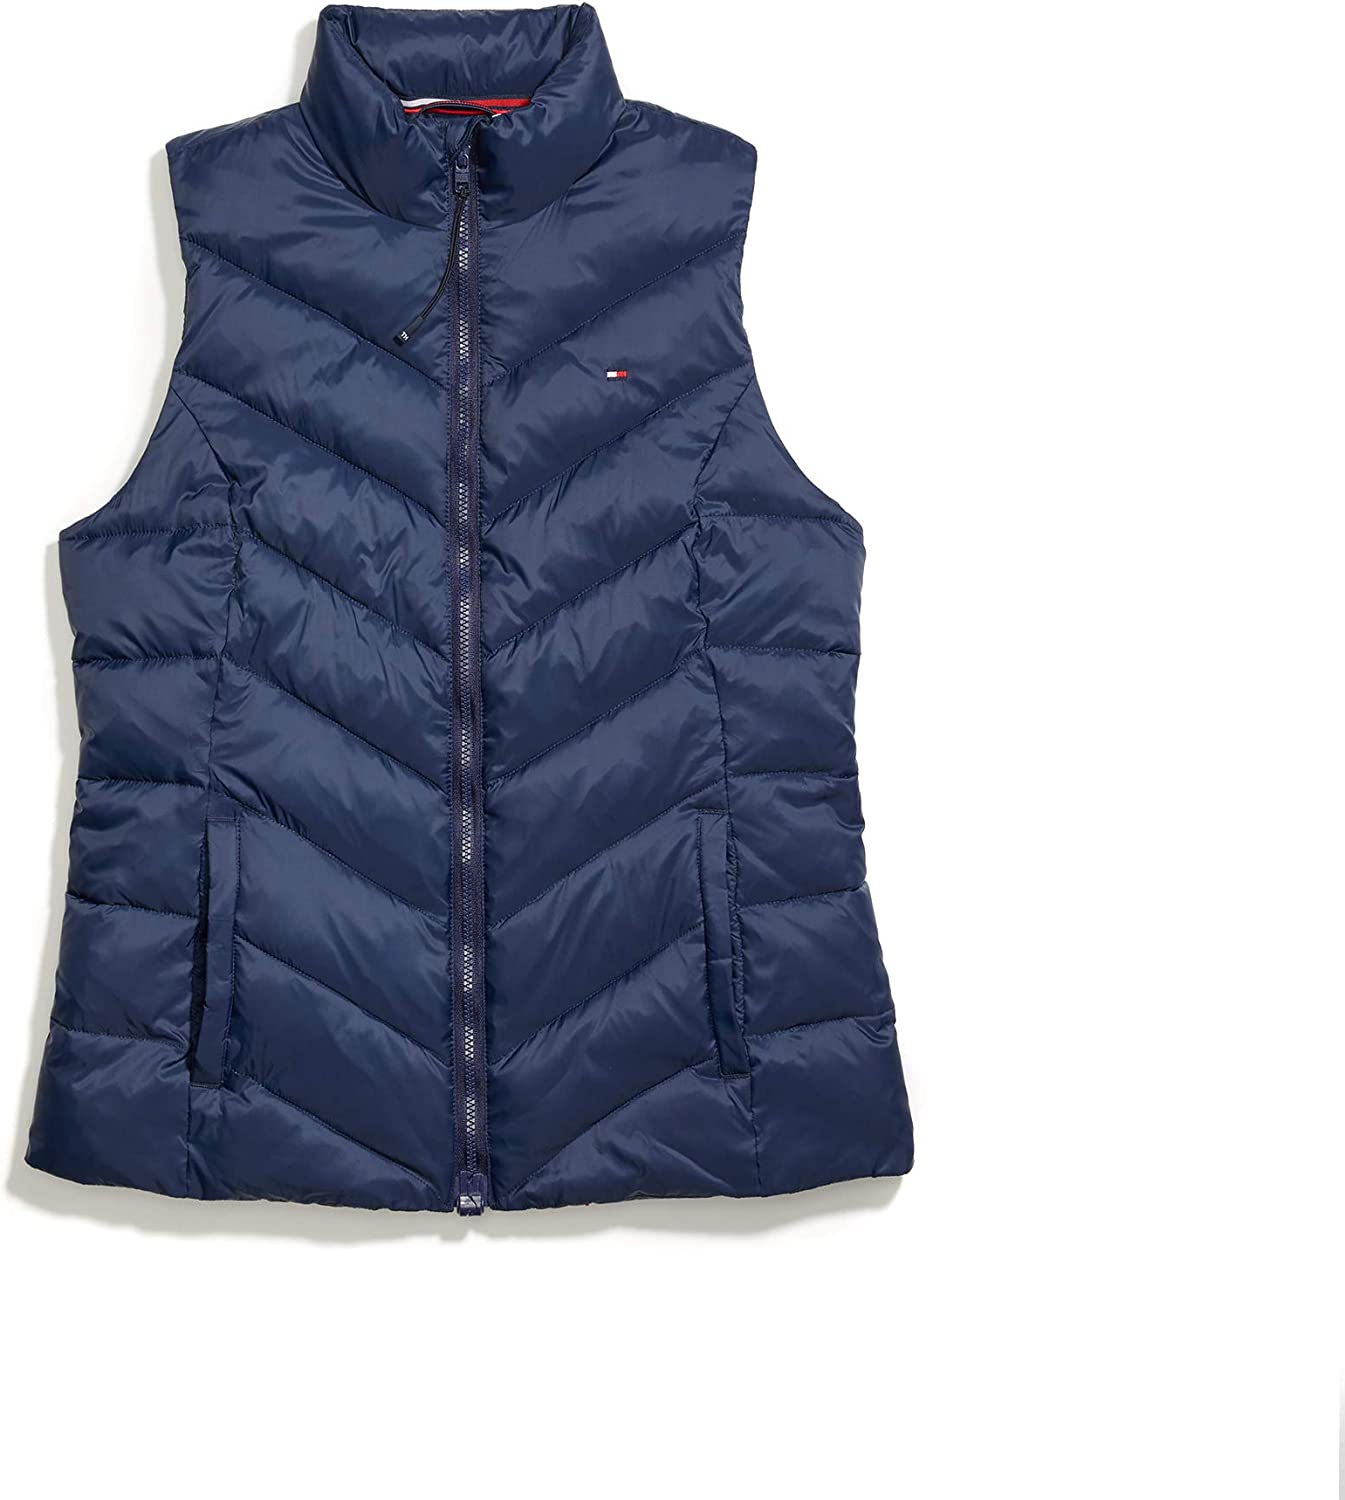 B07VCR4LMR Tommy Hilfiger Women's Adaptive Puffer Vest with Magnetic Zipper 71rsWLqA1SL